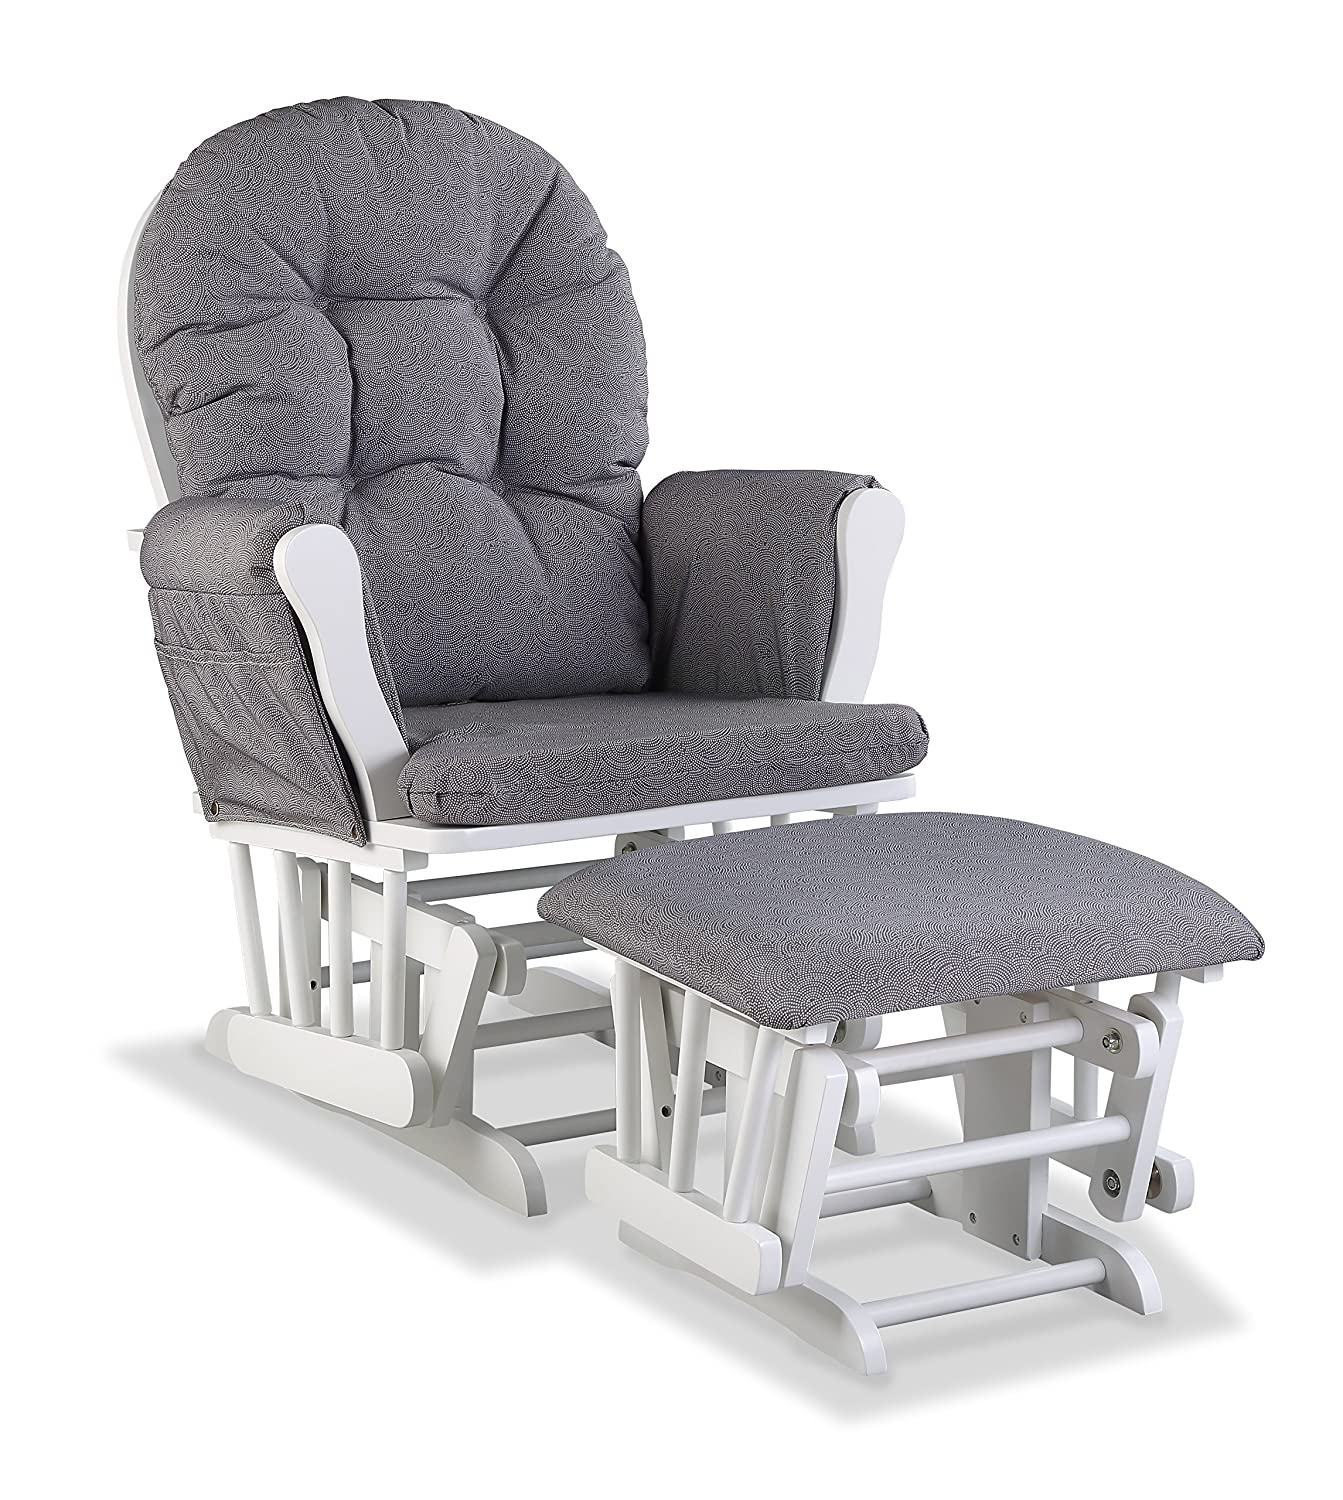 Storkcraft Hoop Custom Glider and Ottoman, White/Slate Gray Swirl 06550-6151